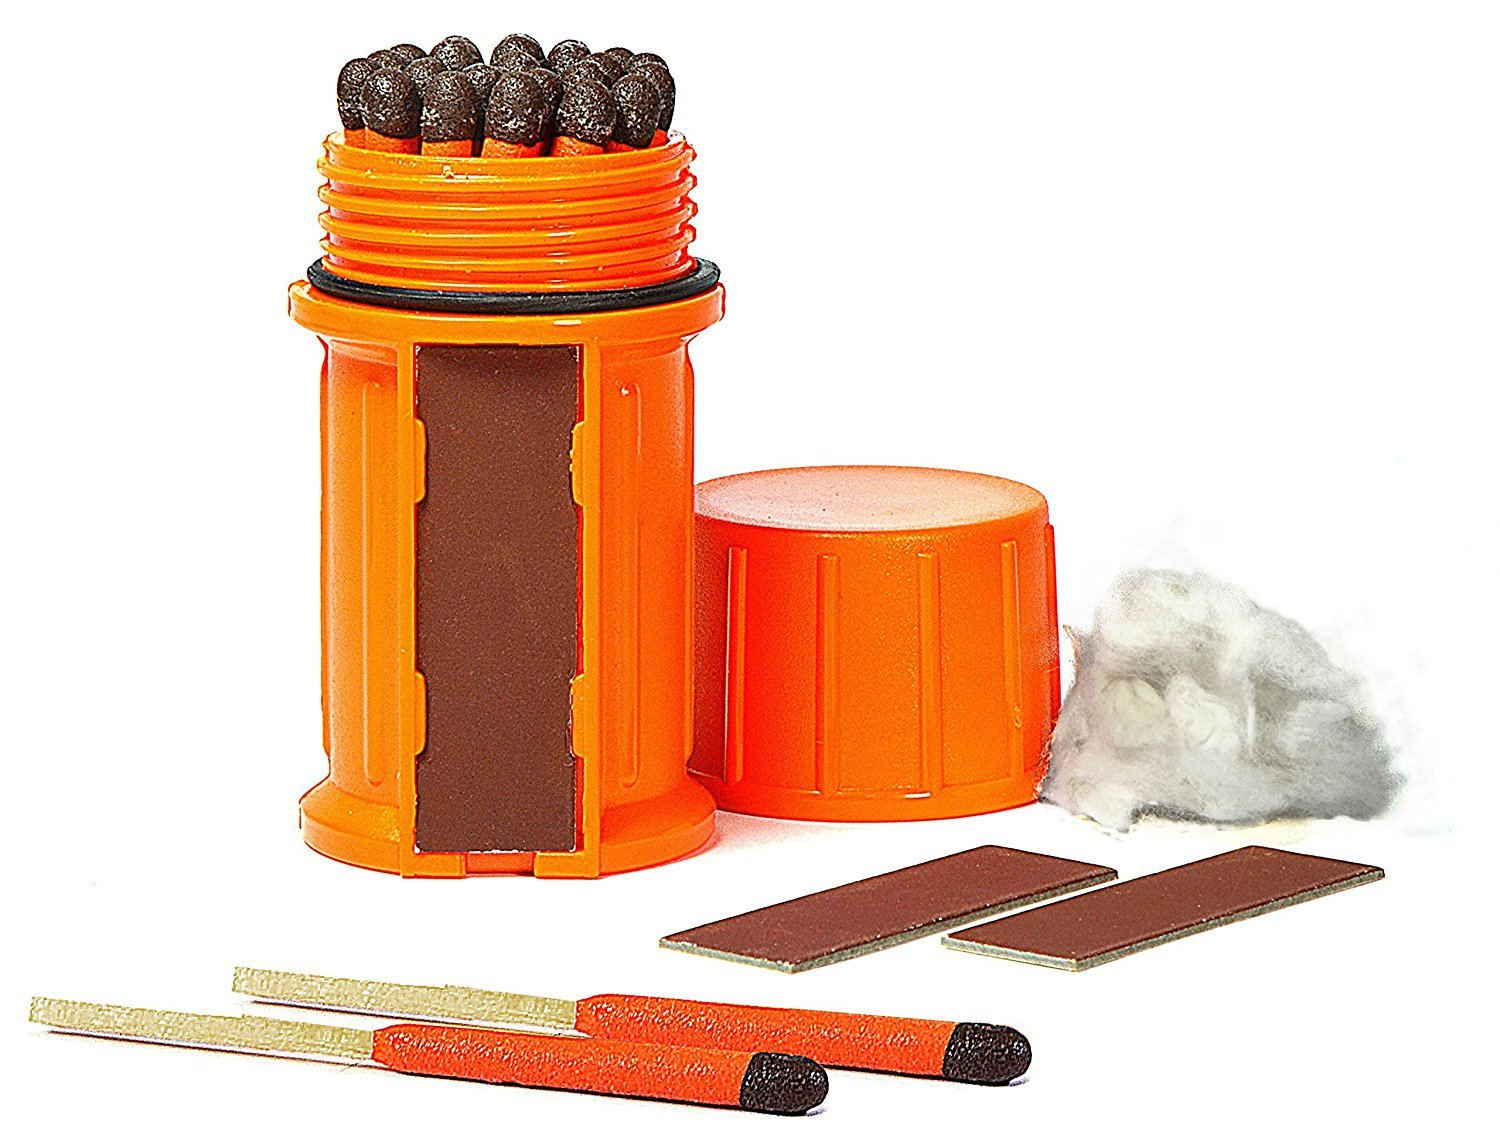 UCO Stormproof Match Kit with Waterproof Case, 25 Stormproof Matches and 3 Strikers Orange 2-Pack